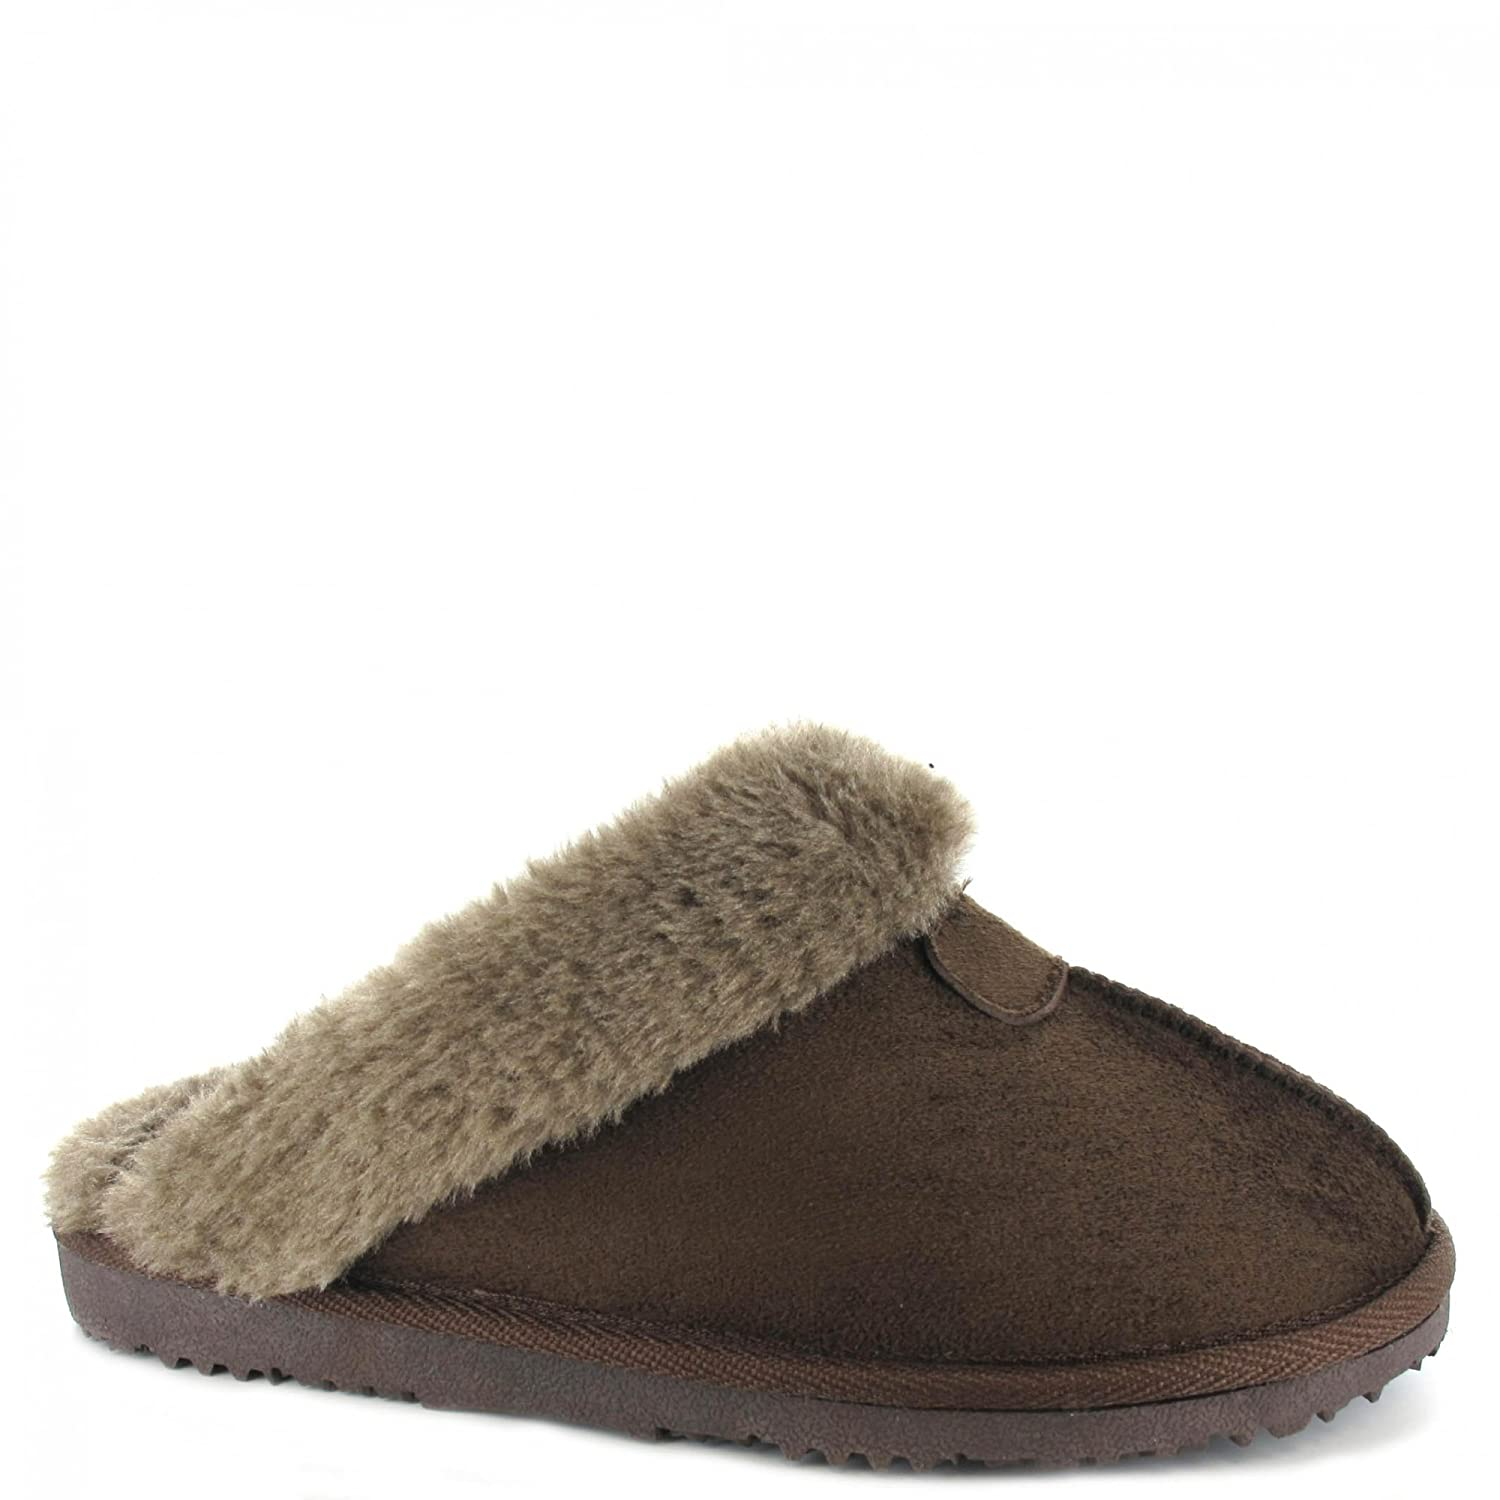 acac7e42e61de Ella Shoes JILL Ladies Mule Slippers Brown  Amazon.co.uk  Shoes   Bags